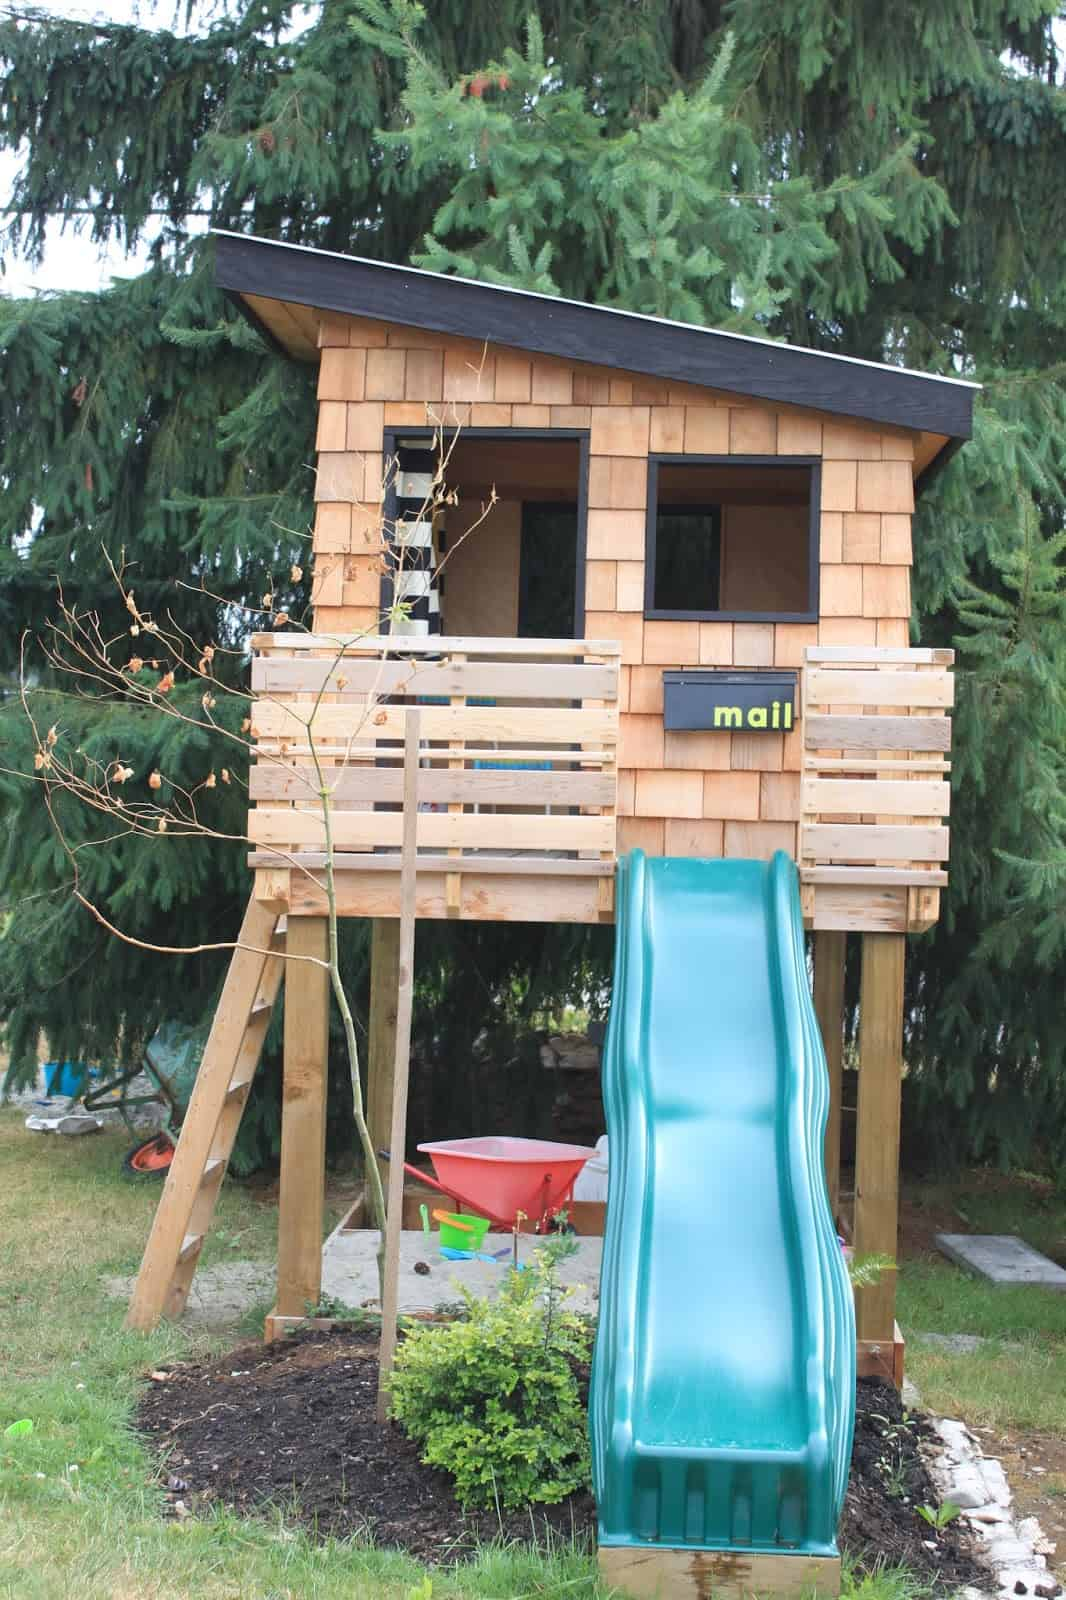 Do It Yourself Home Design: 43 Free DIY Playhouse Plans That Children & Parents Alike